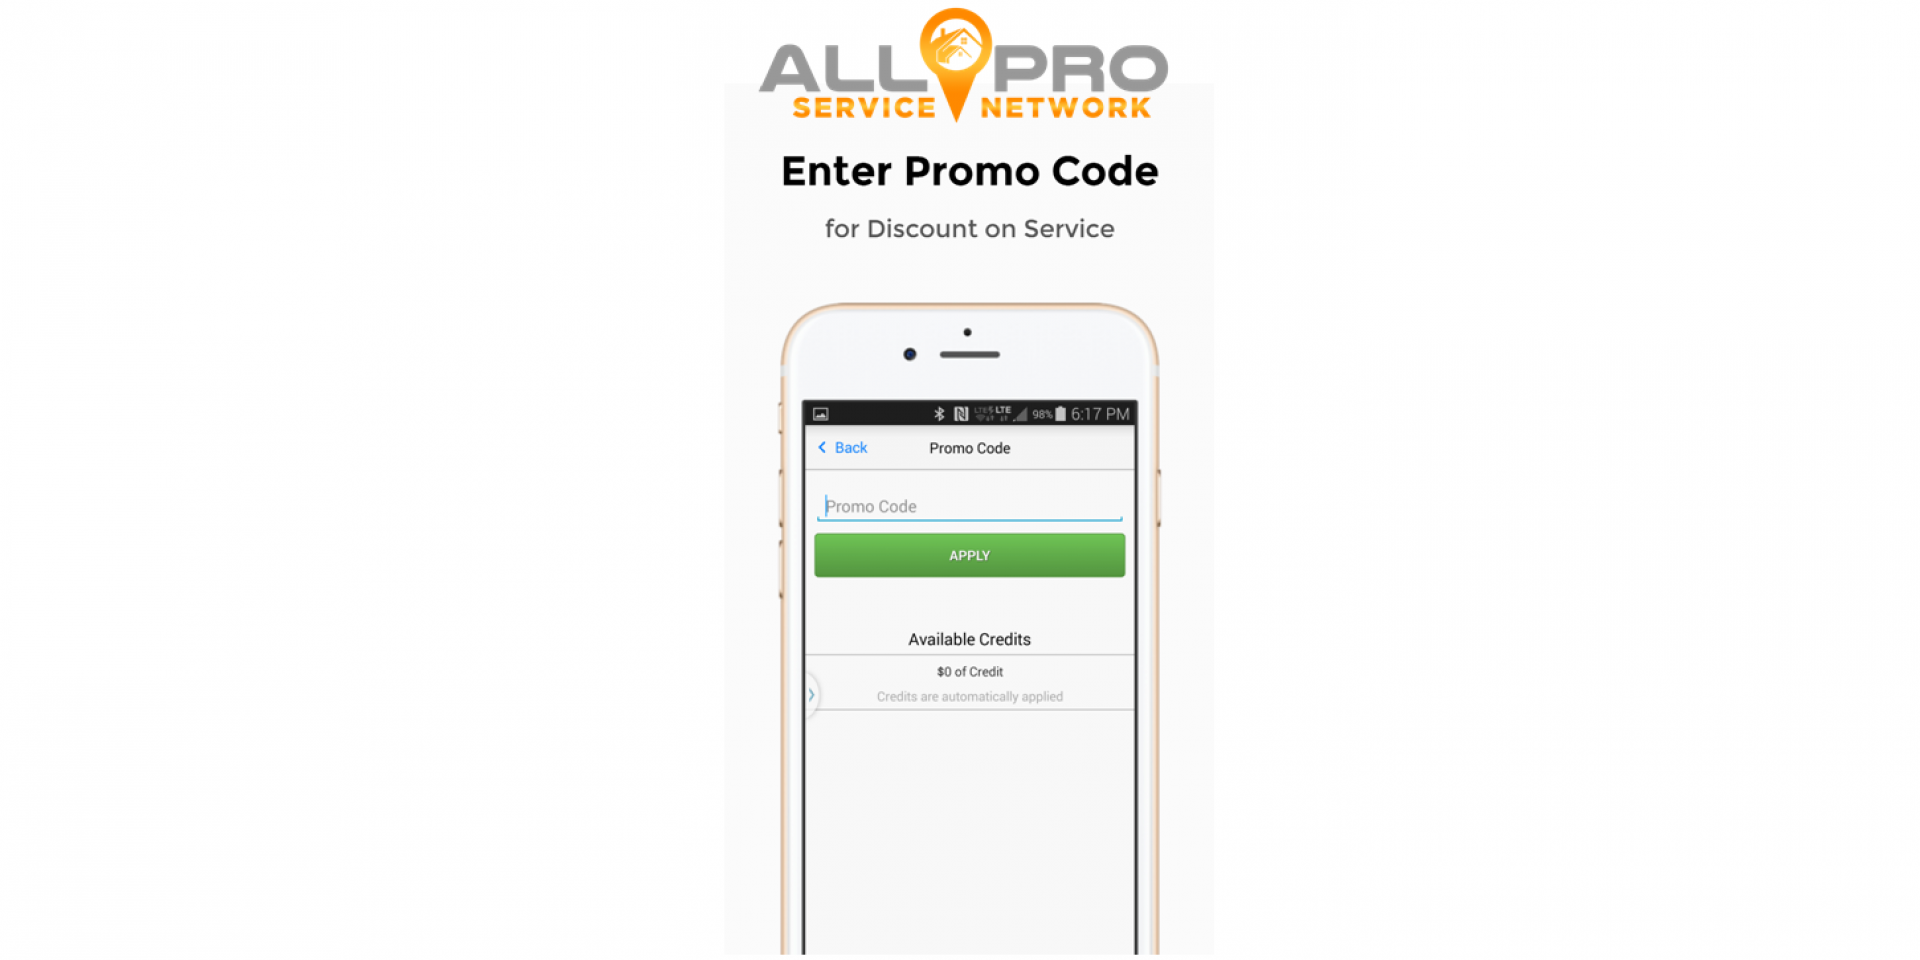 Discounts for Service can be Applied On Mobile Device